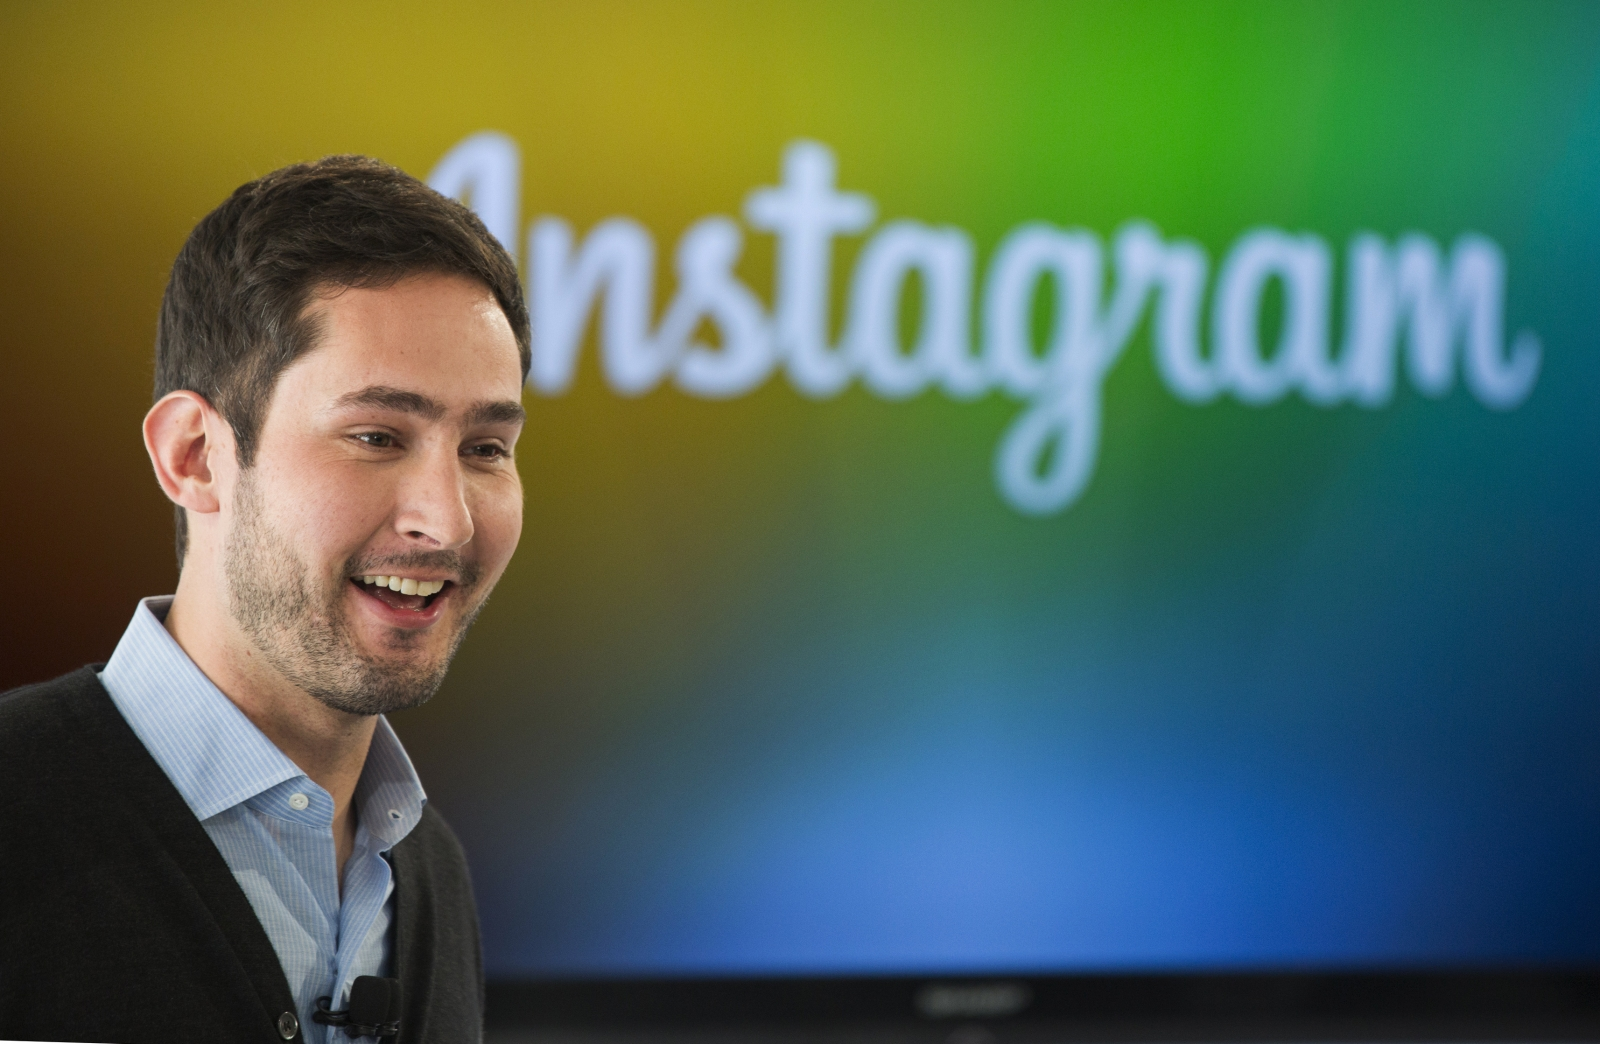 instagram-ceo-kevin-systrom